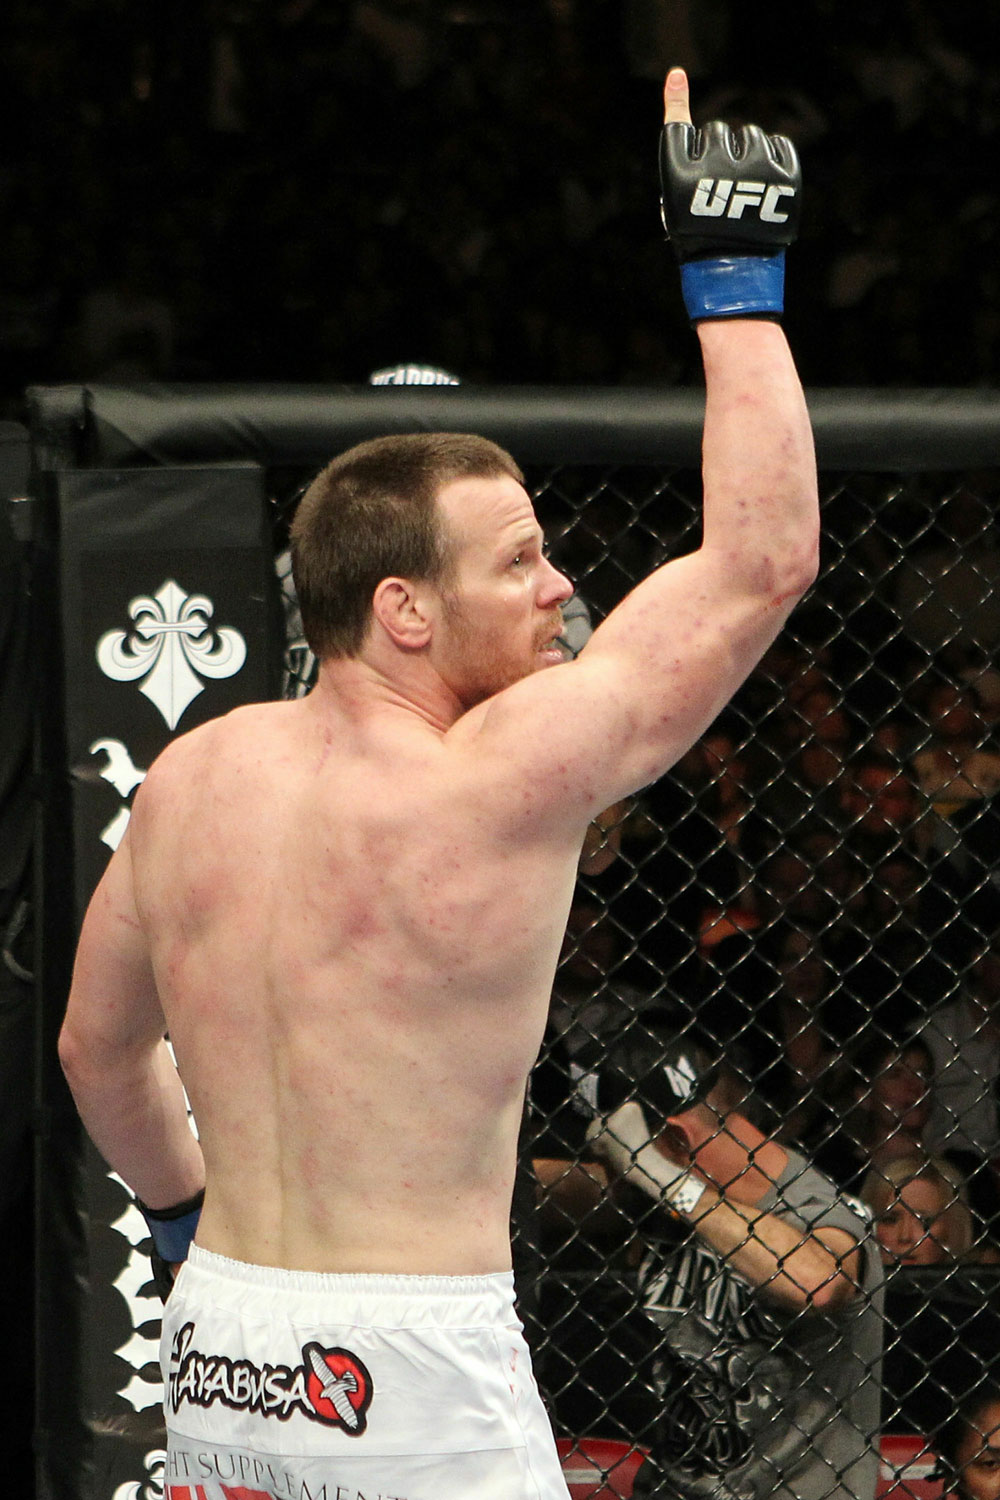 UFC123: Dennis Hallman celebrates after he won his fight by TKO against Karo Parisyan.